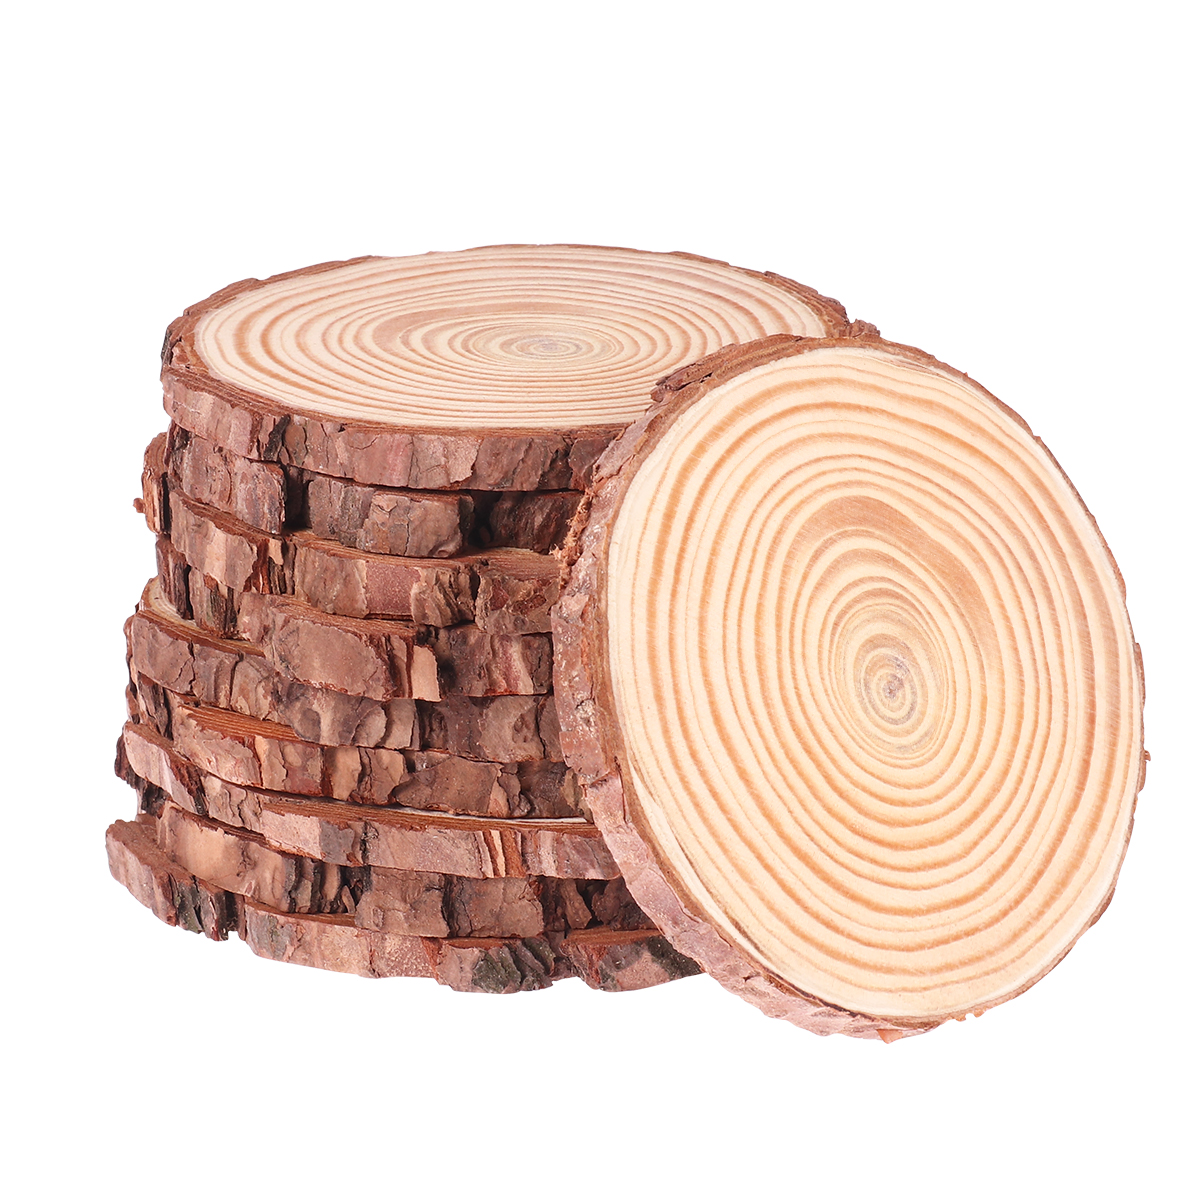 10pcs 10-12CM Natural Wood Log Slices Discs For DIY Crafts Wedding Centerpieces